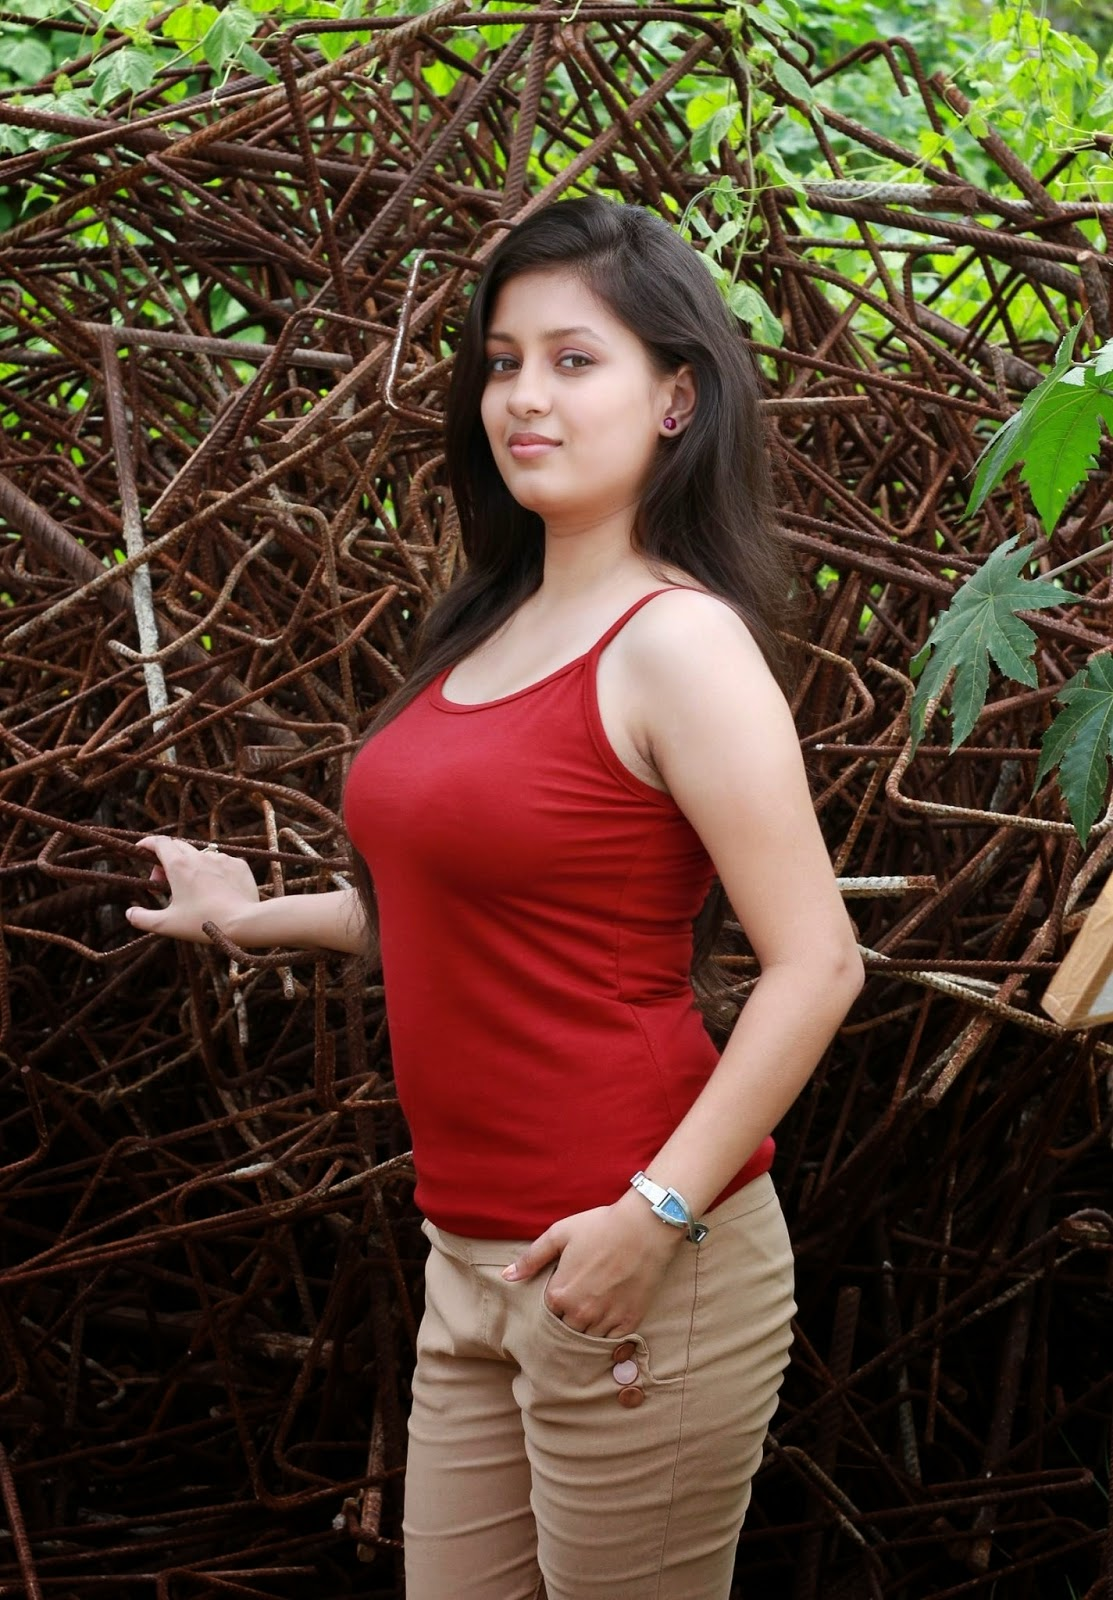 actress without bra images